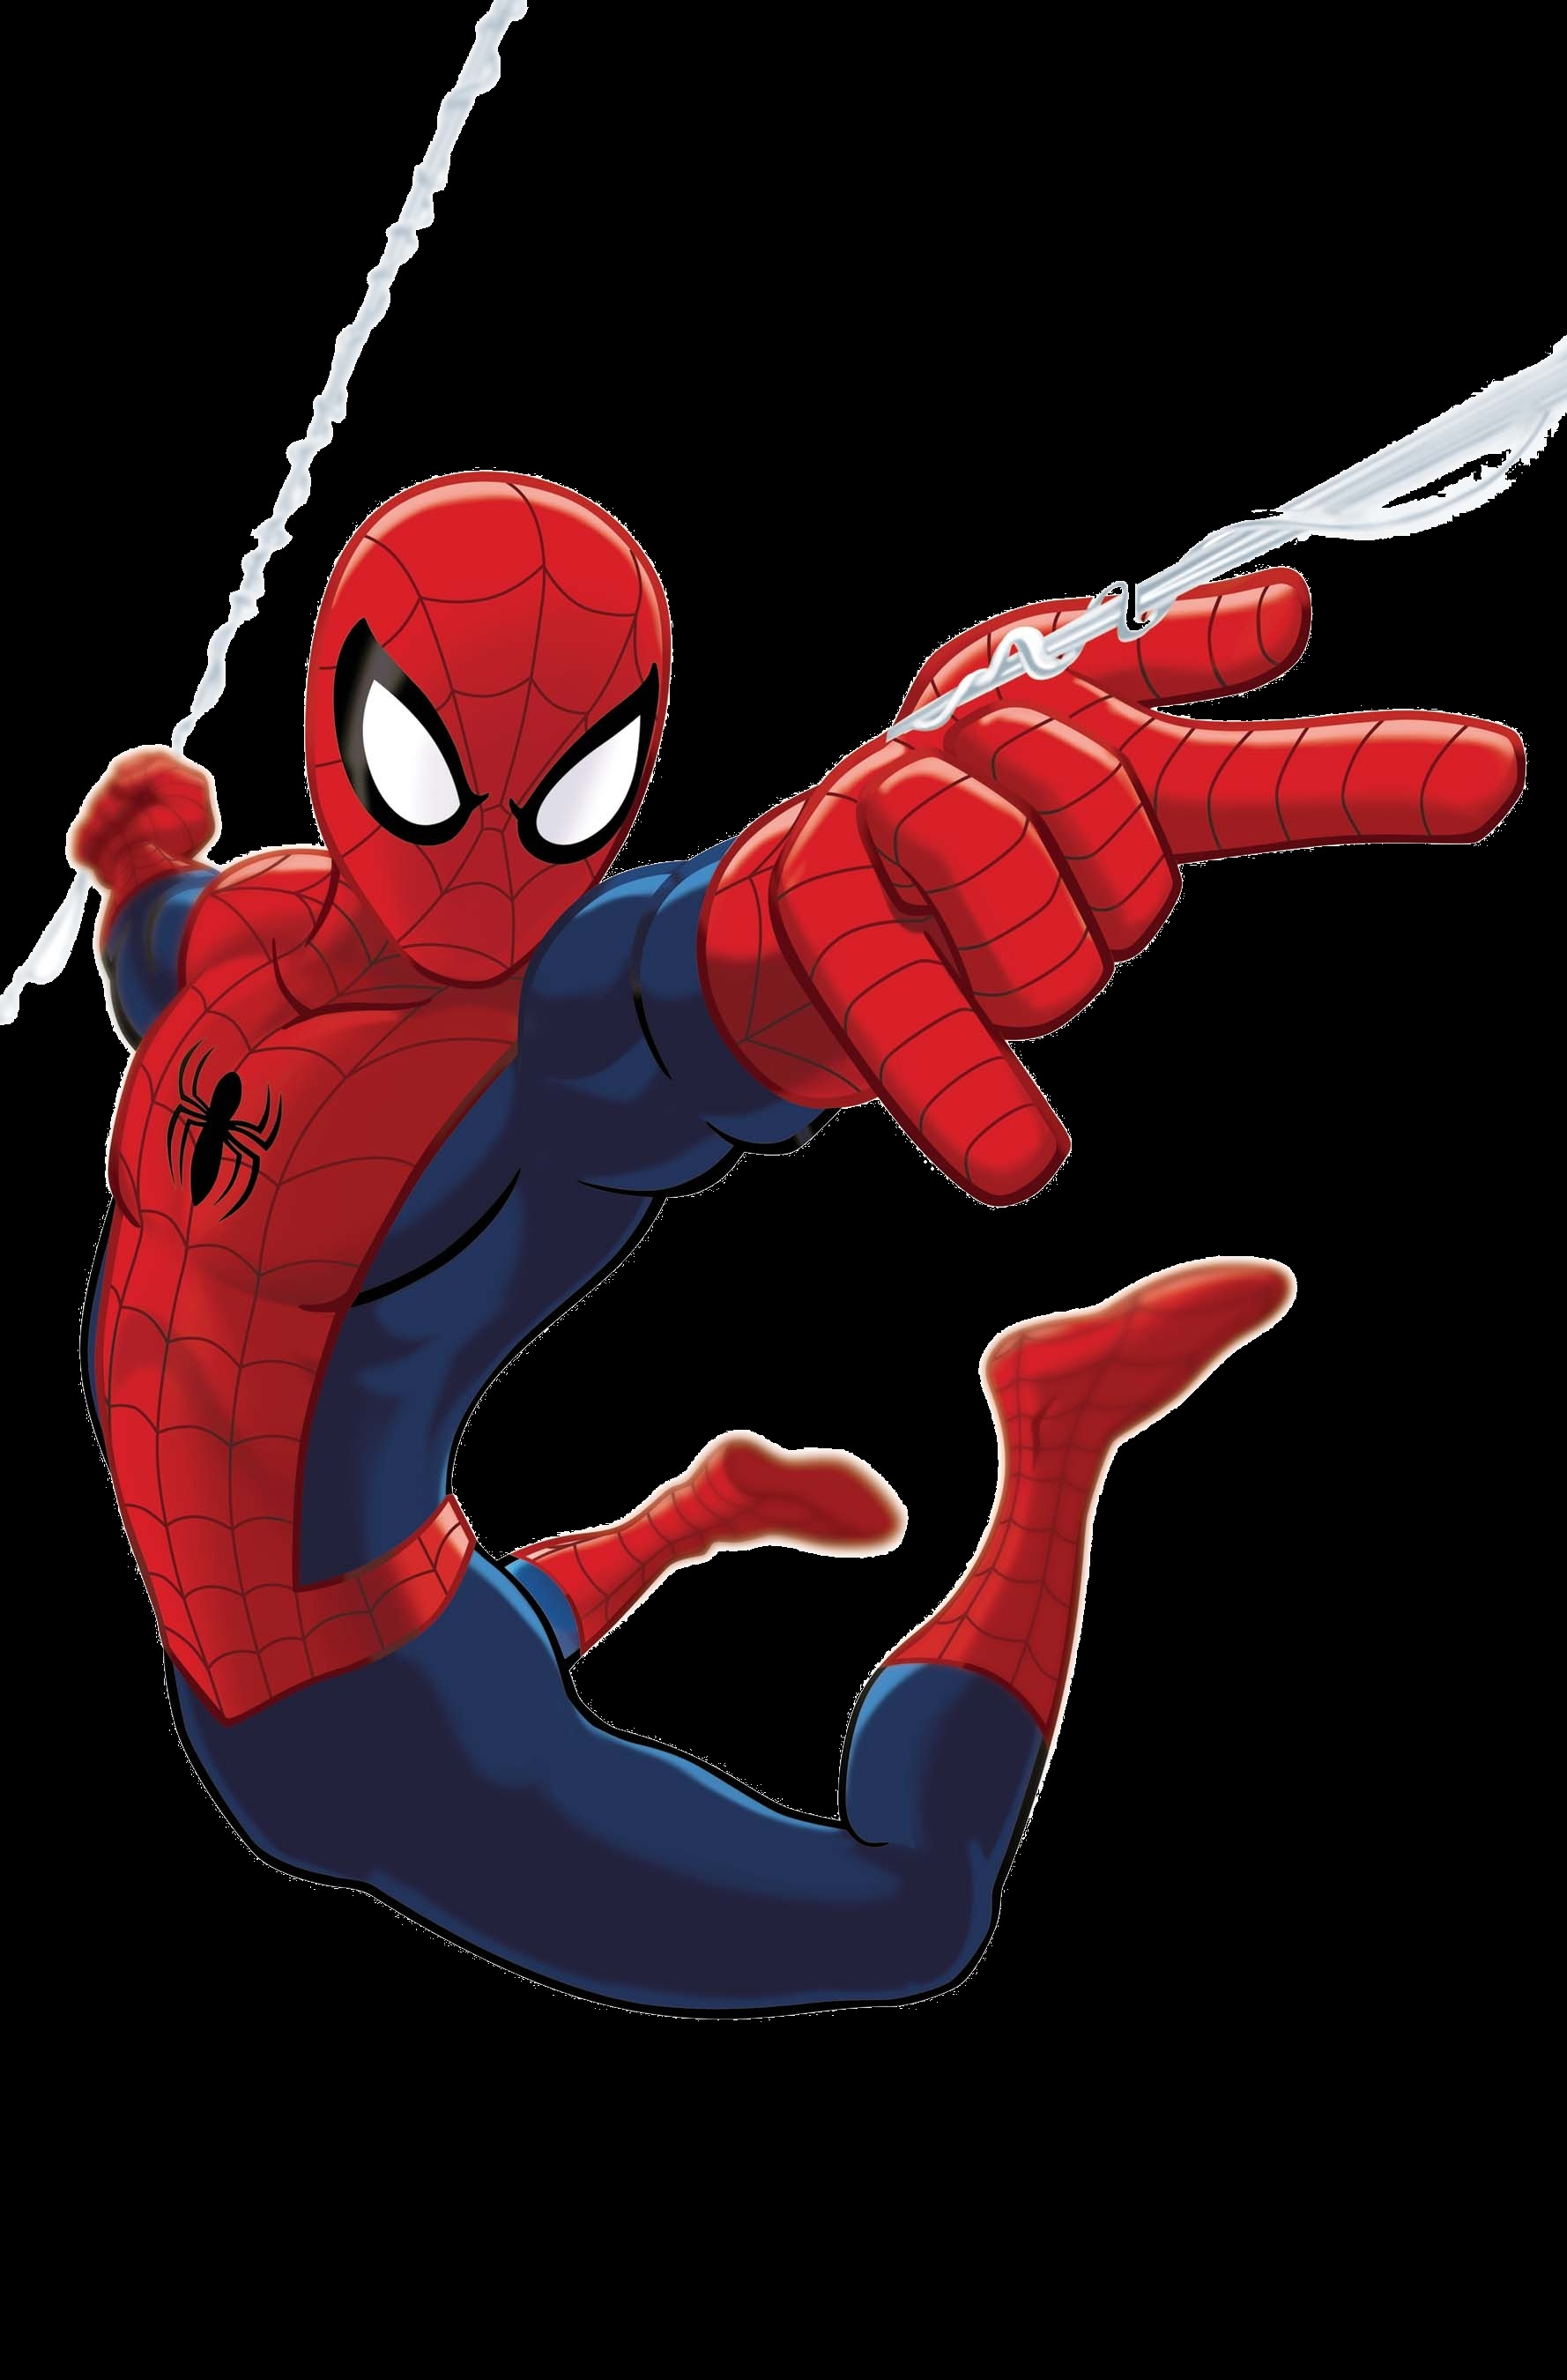 Related Wallpapers. ultimatespidermanadventures 1 cover